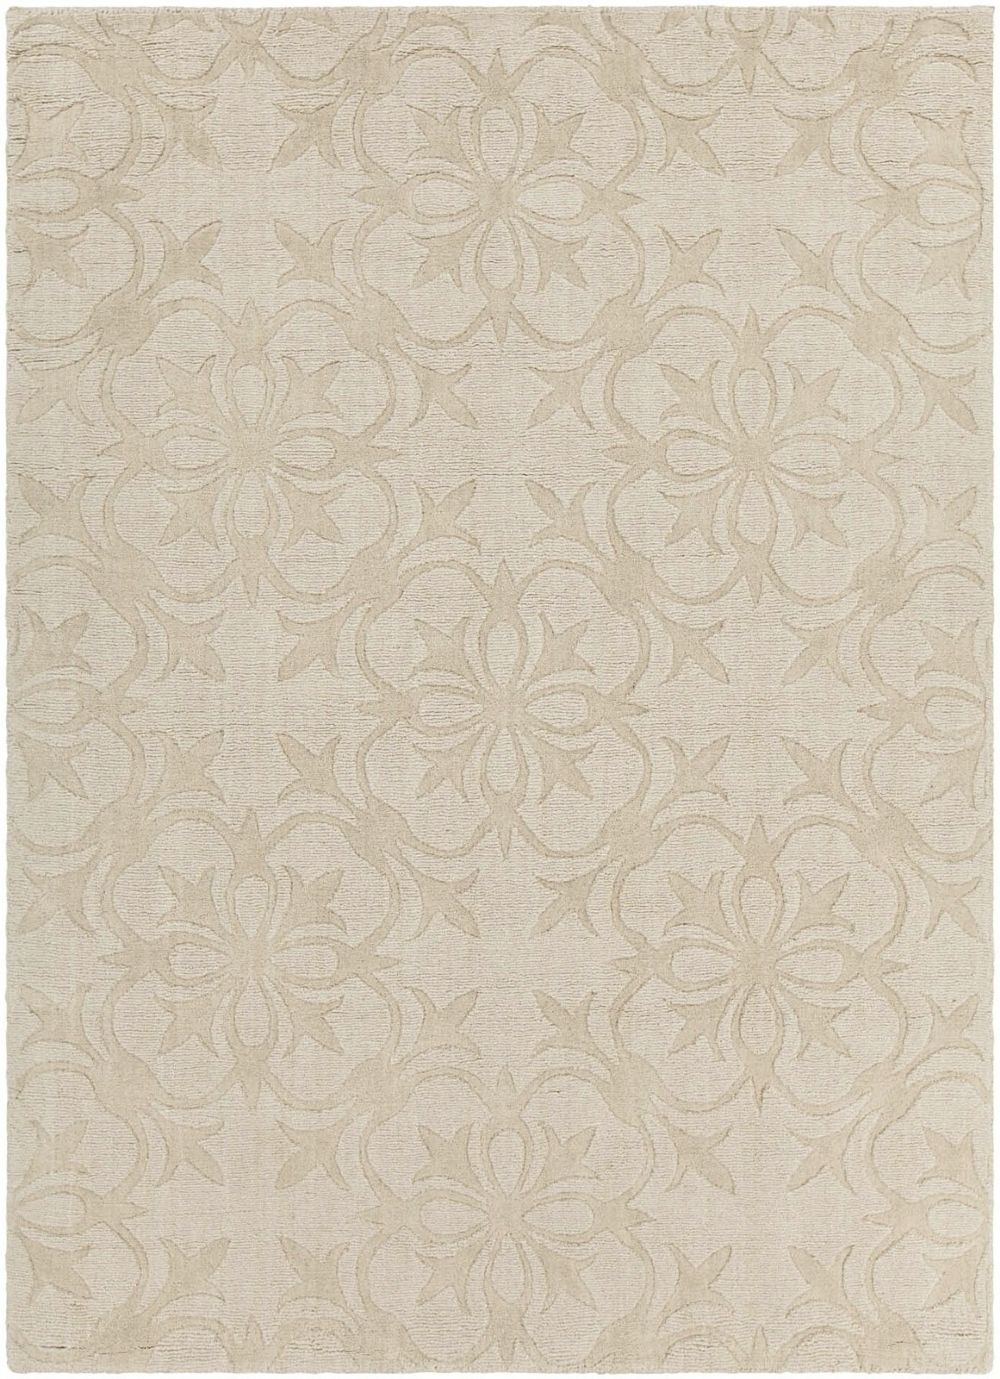 chandra rekha transitional area rug collection